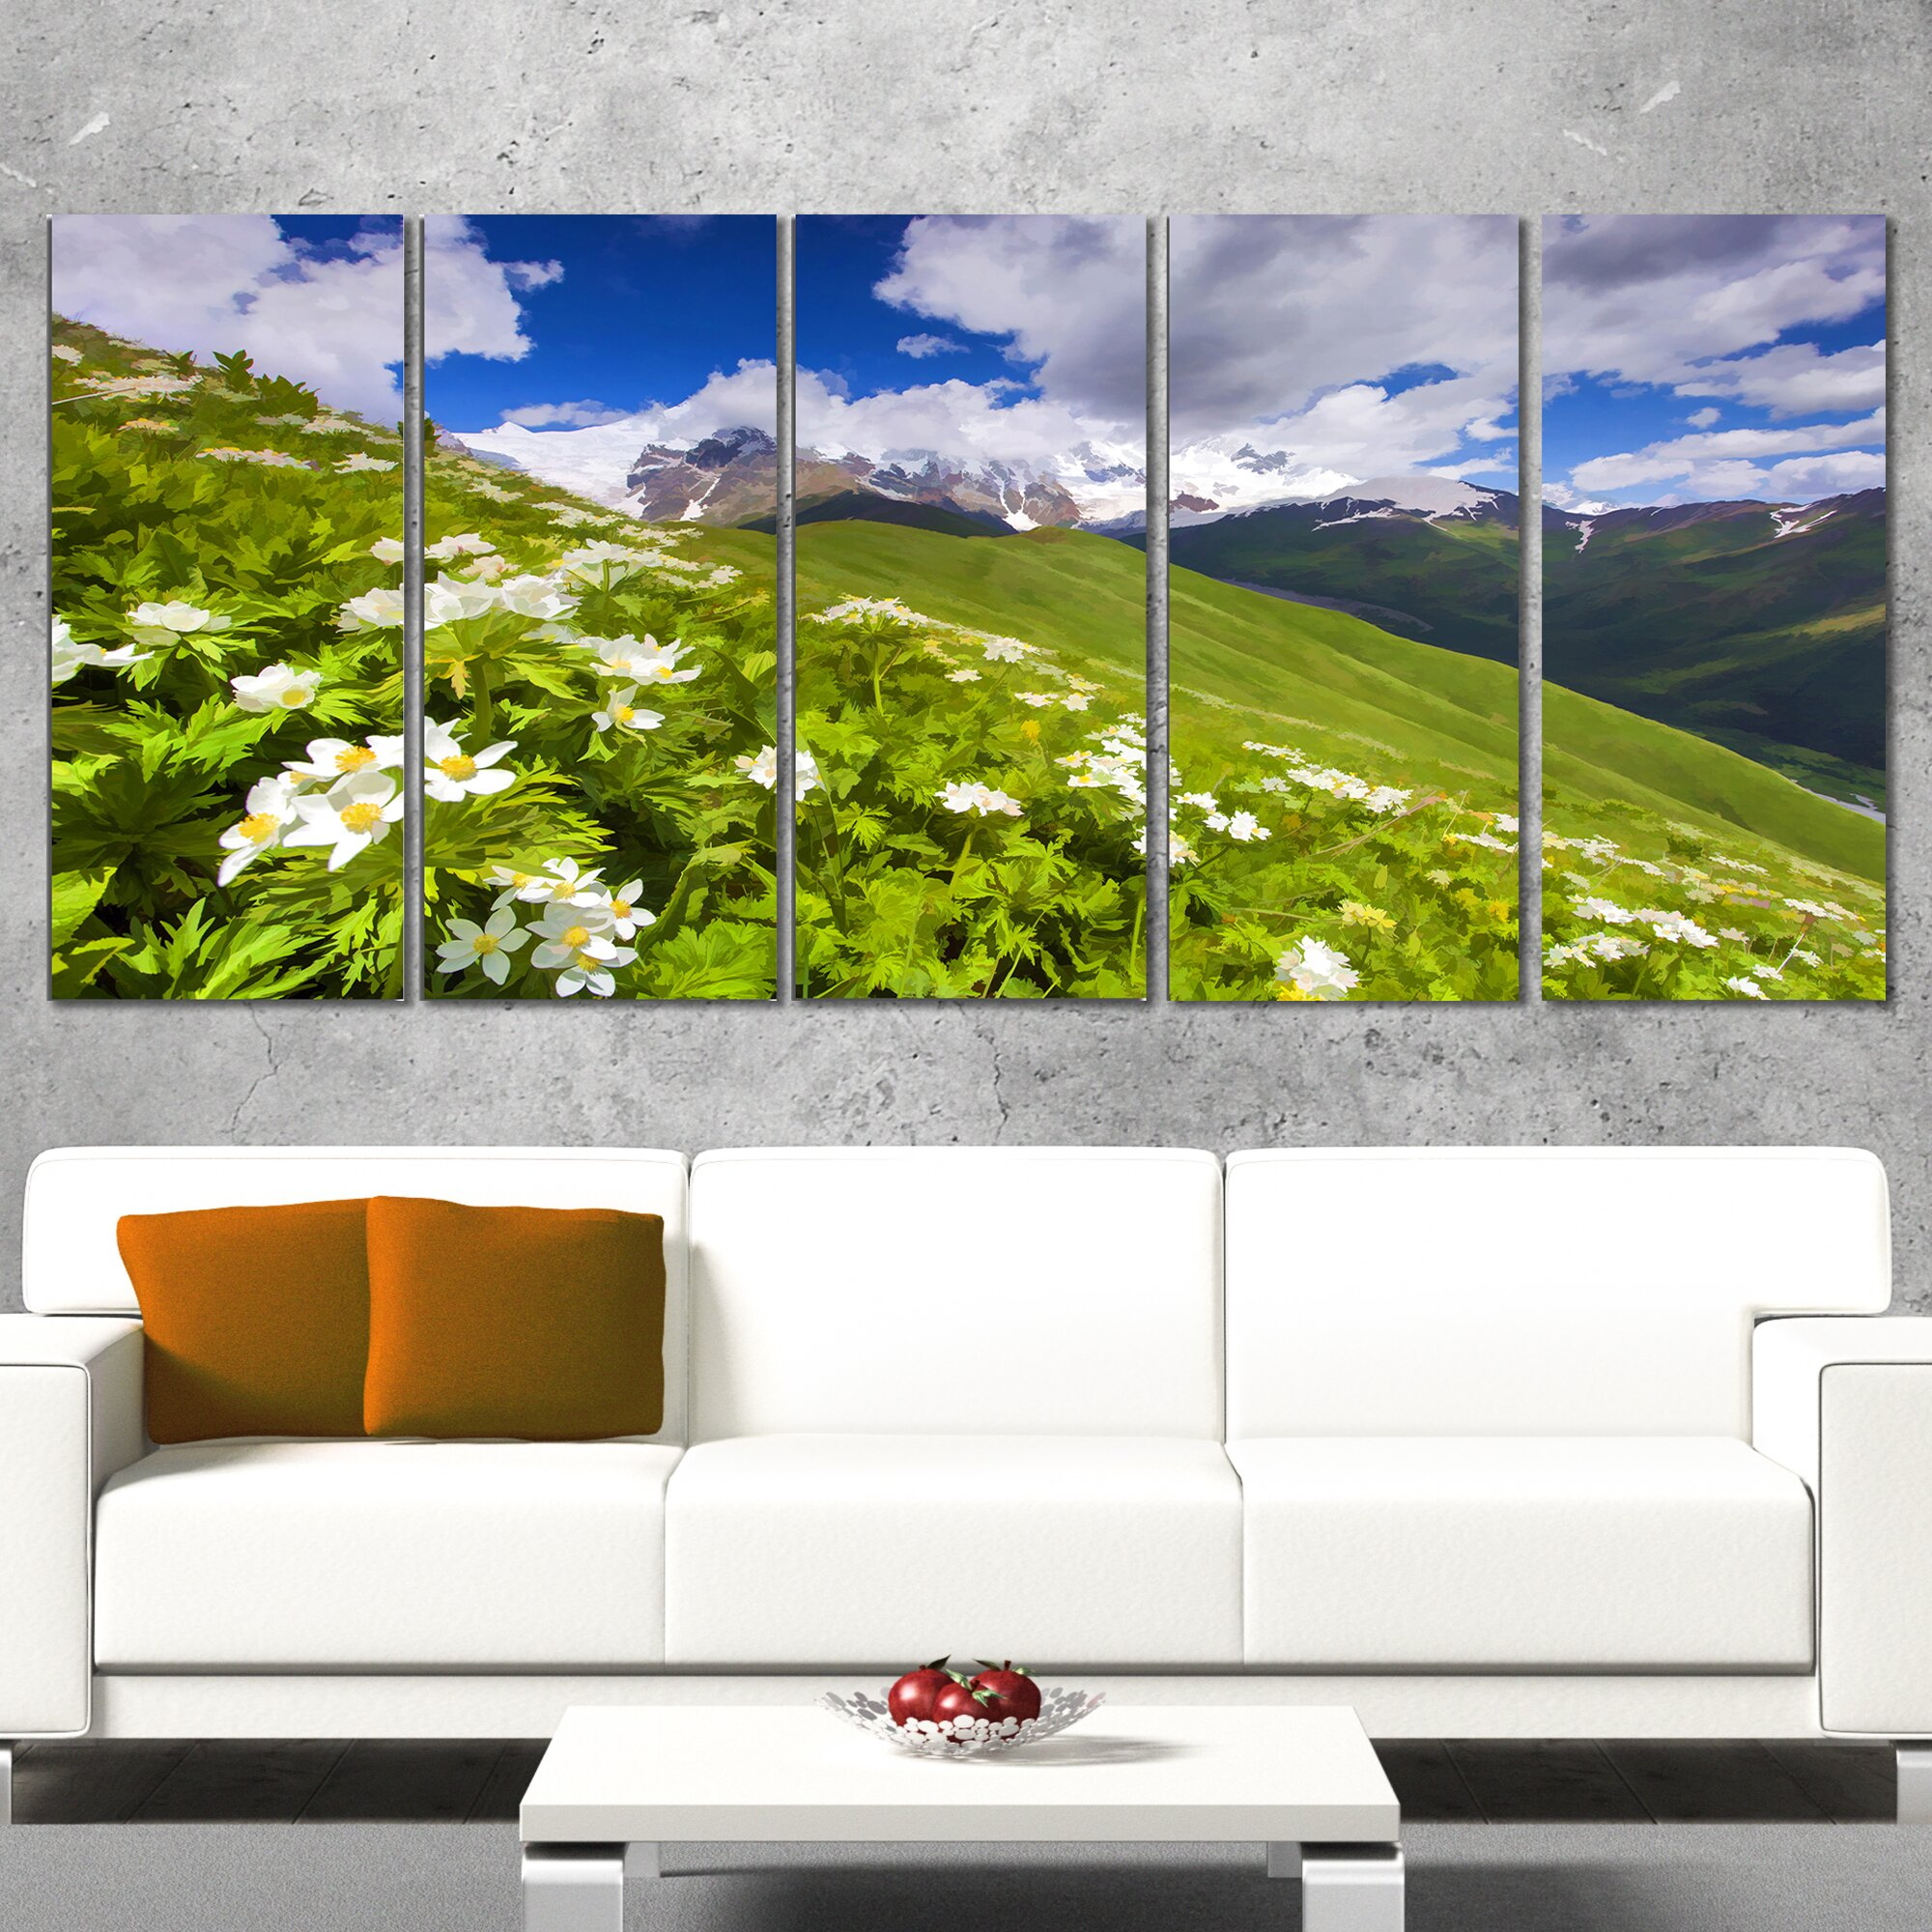 designart blossom flowers in mountains 5 piece wall art on wrapped canvas set wayfair. Black Bedroom Furniture Sets. Home Design Ideas